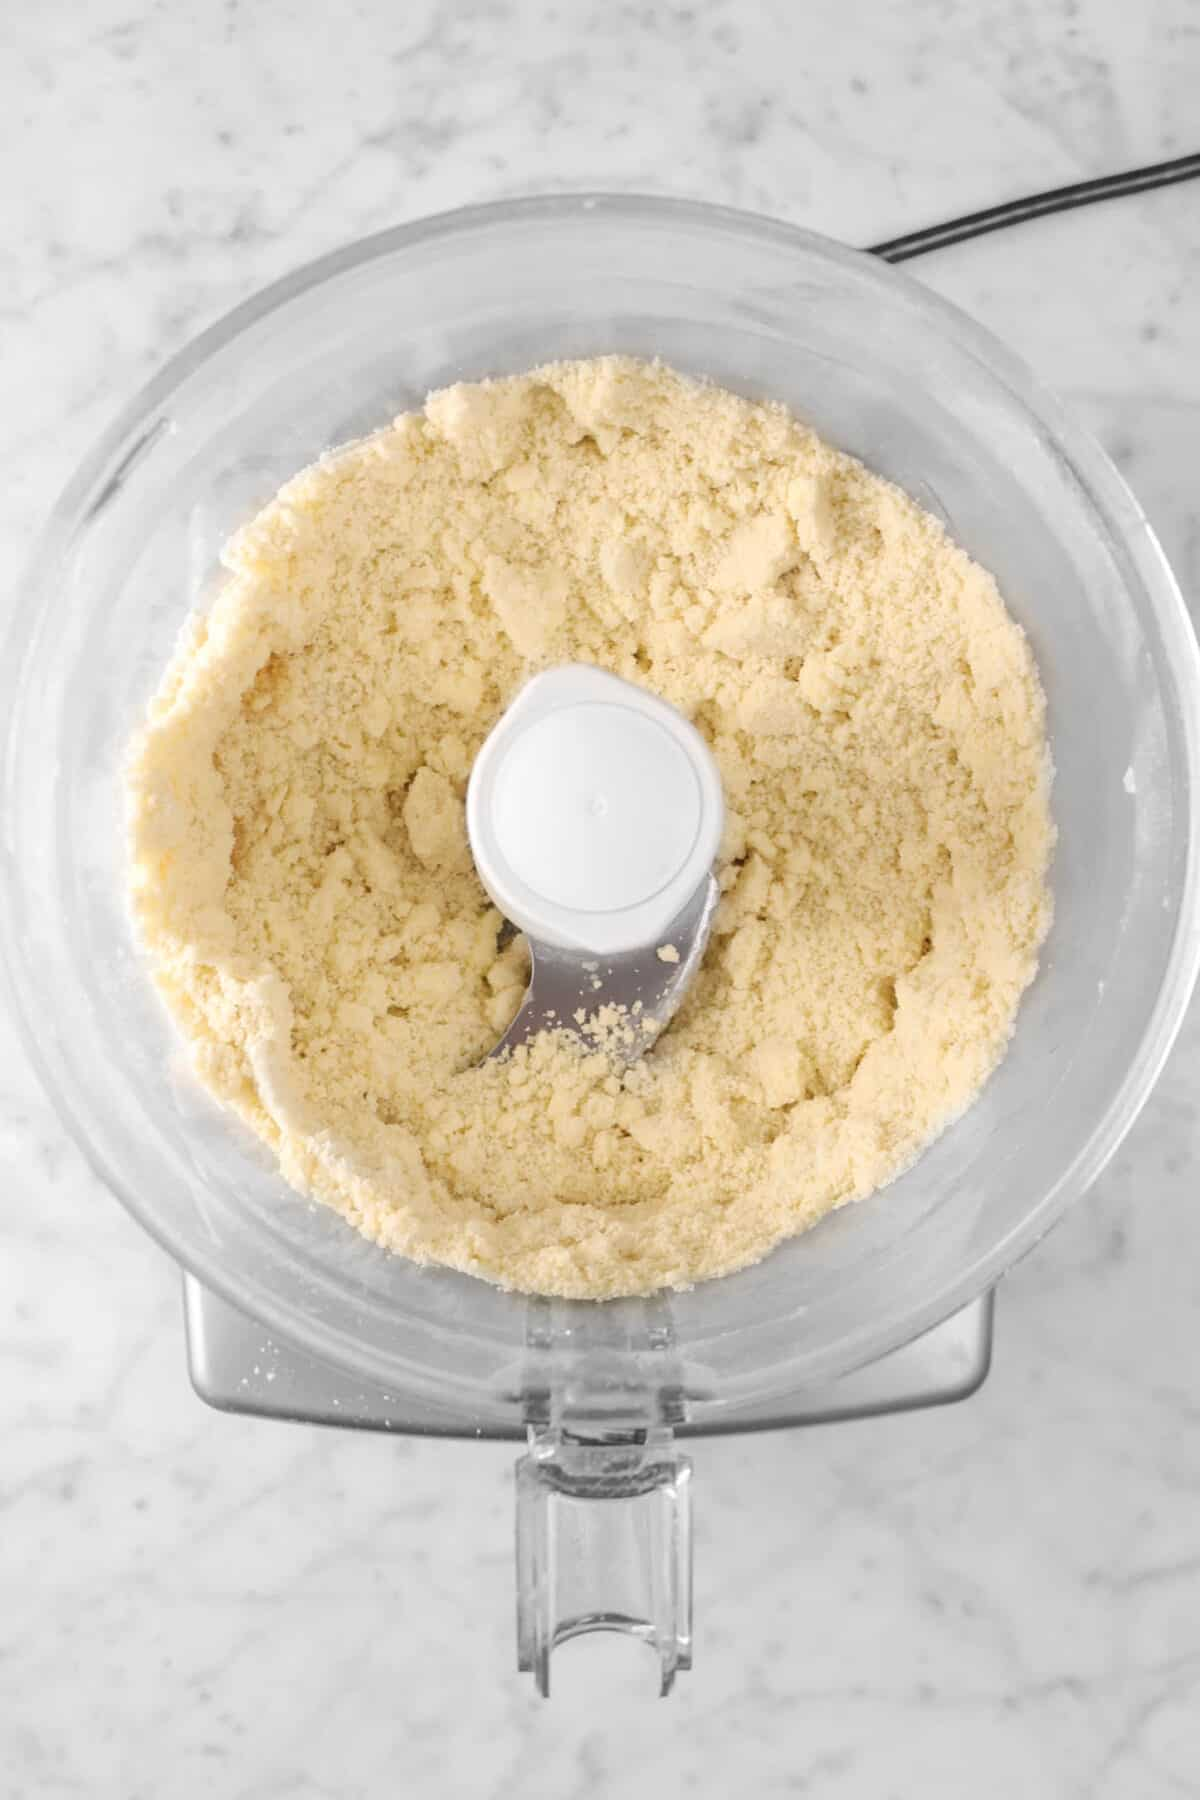 butter and flour mixture blended